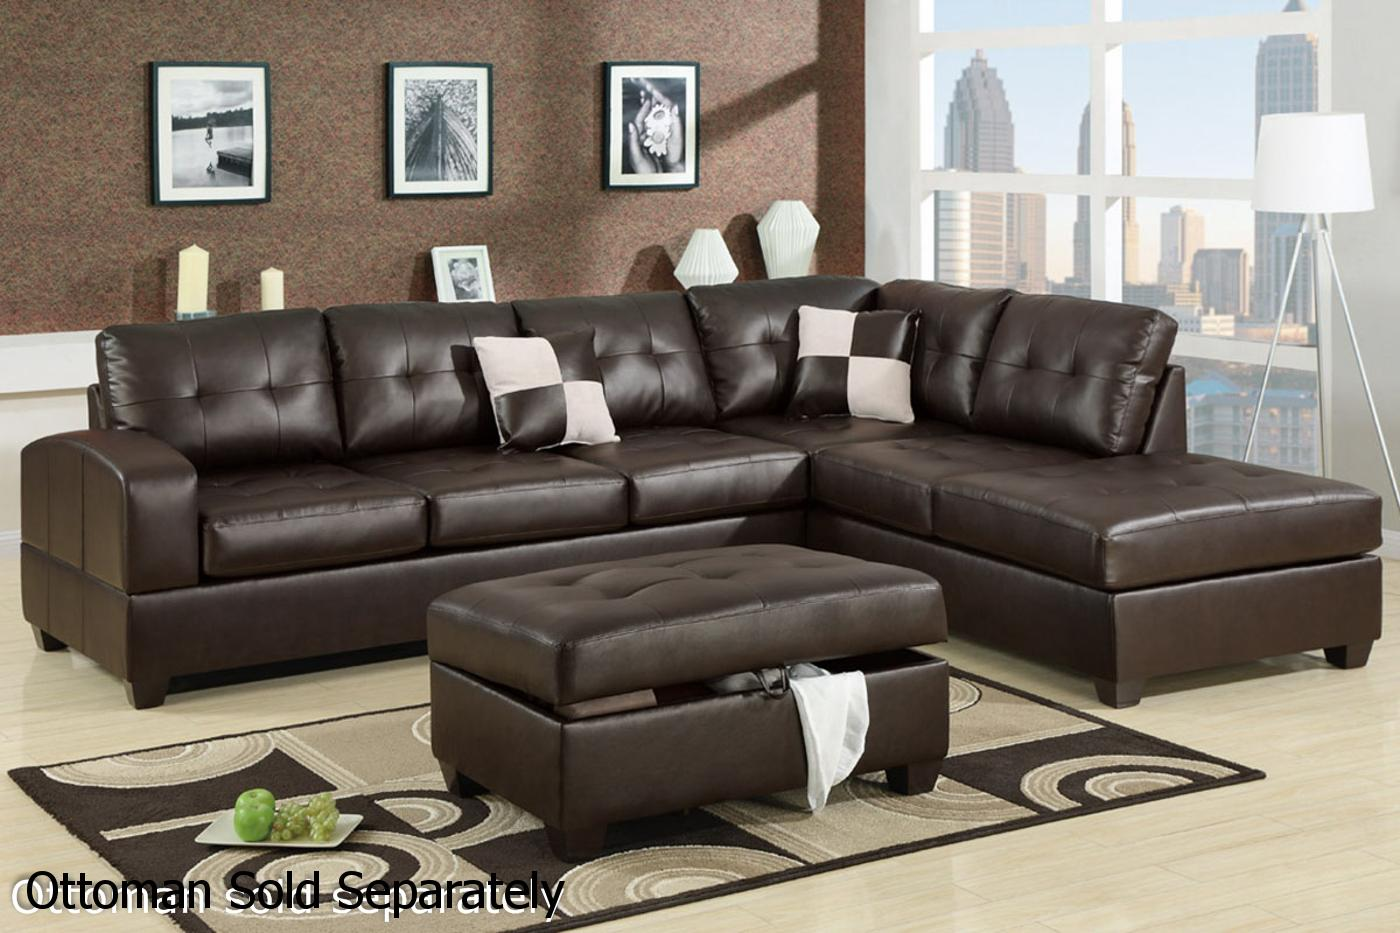 leather sectional sofas reese brown leather sectional sofa HDMKXXO